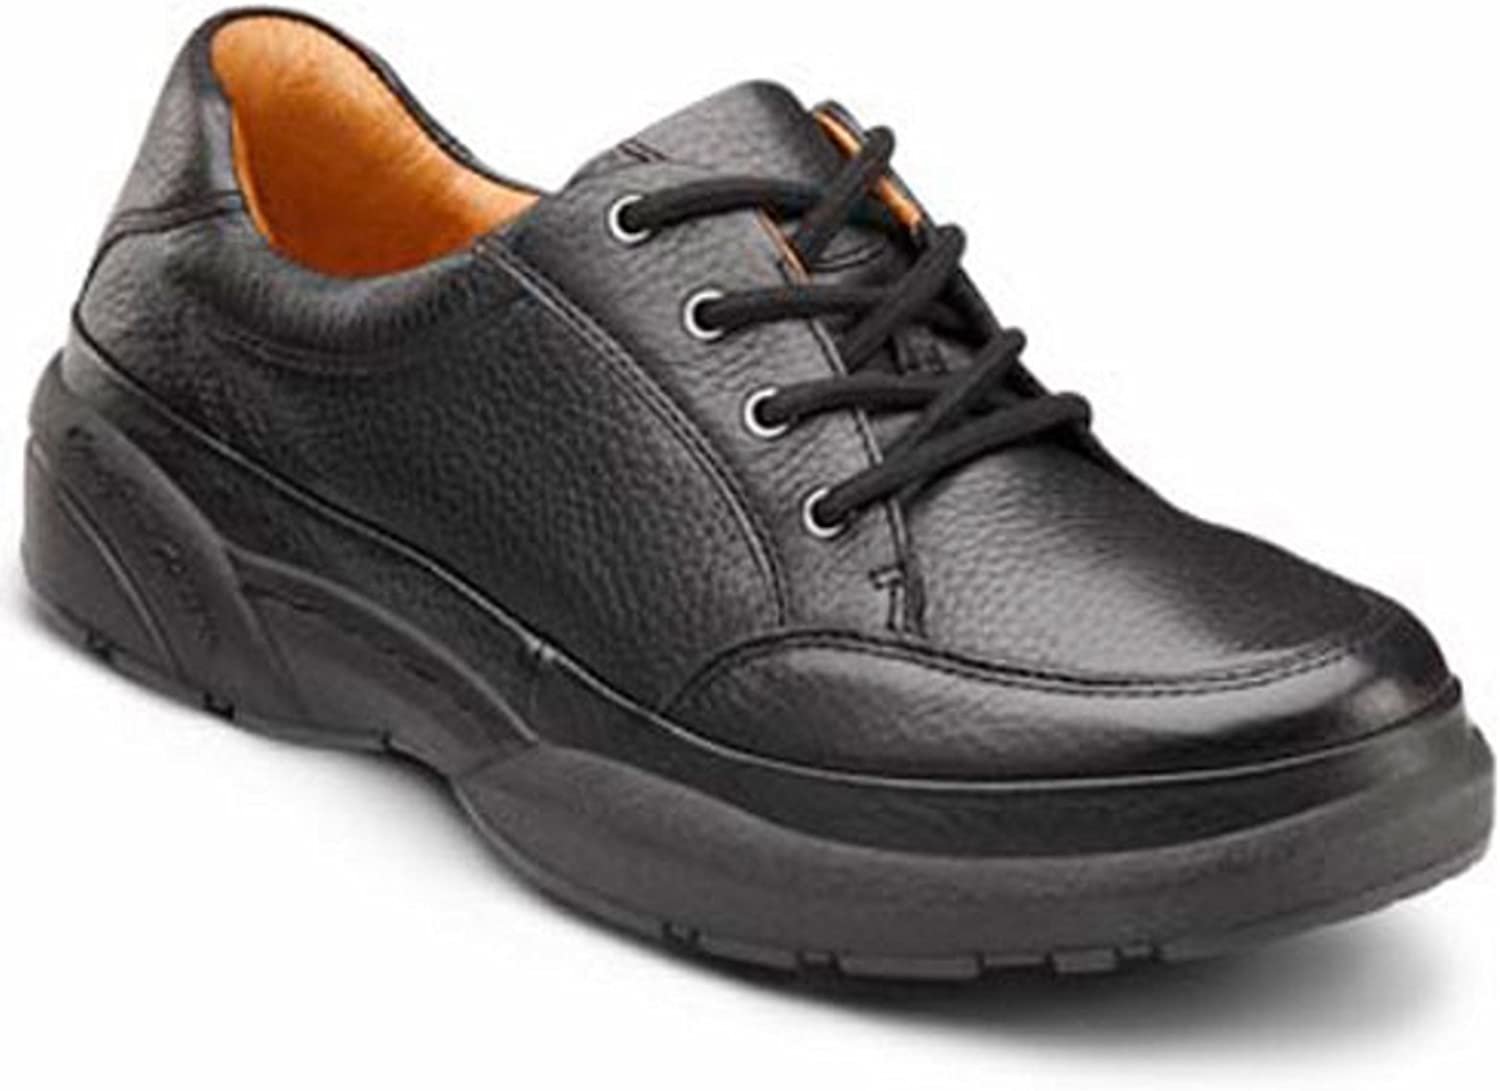 Dr. Comfort Justin Men's Therapeutic Diabetic Extra Depth shoes Leather Lace